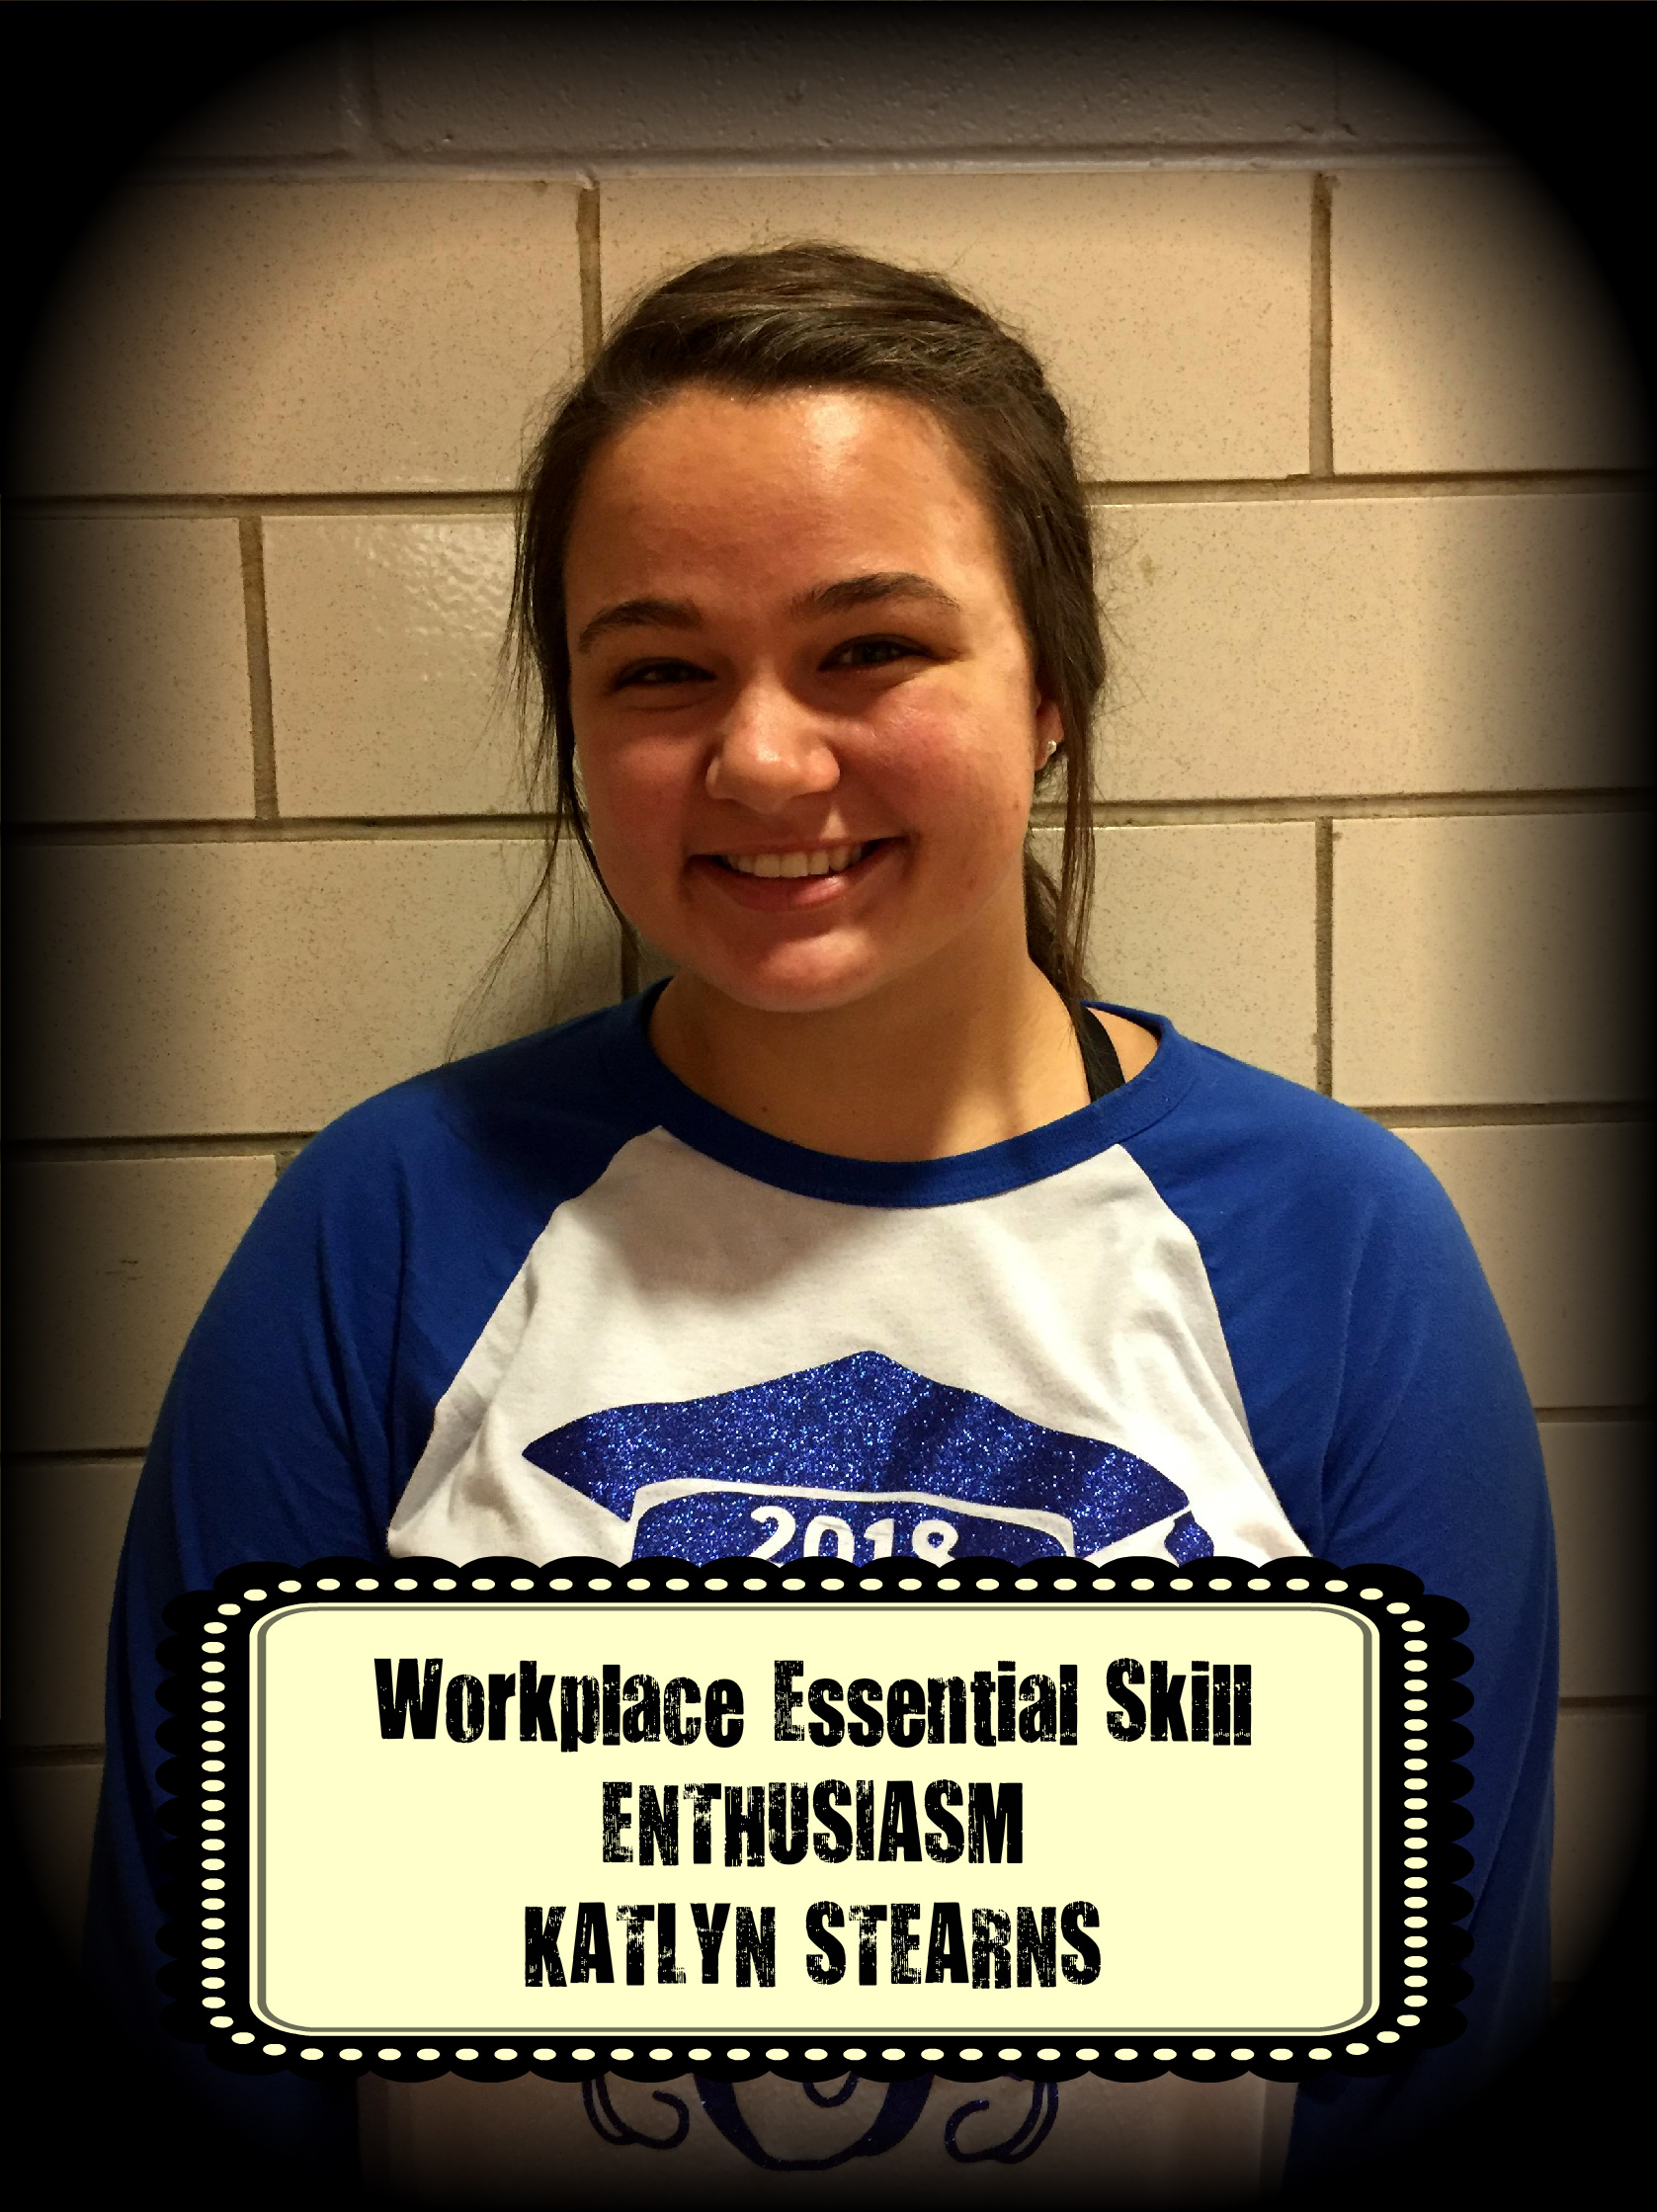 Katie Stearns was awarded the Workplace Essential Skill Award for ENTHUSIASM in Health Sciences.